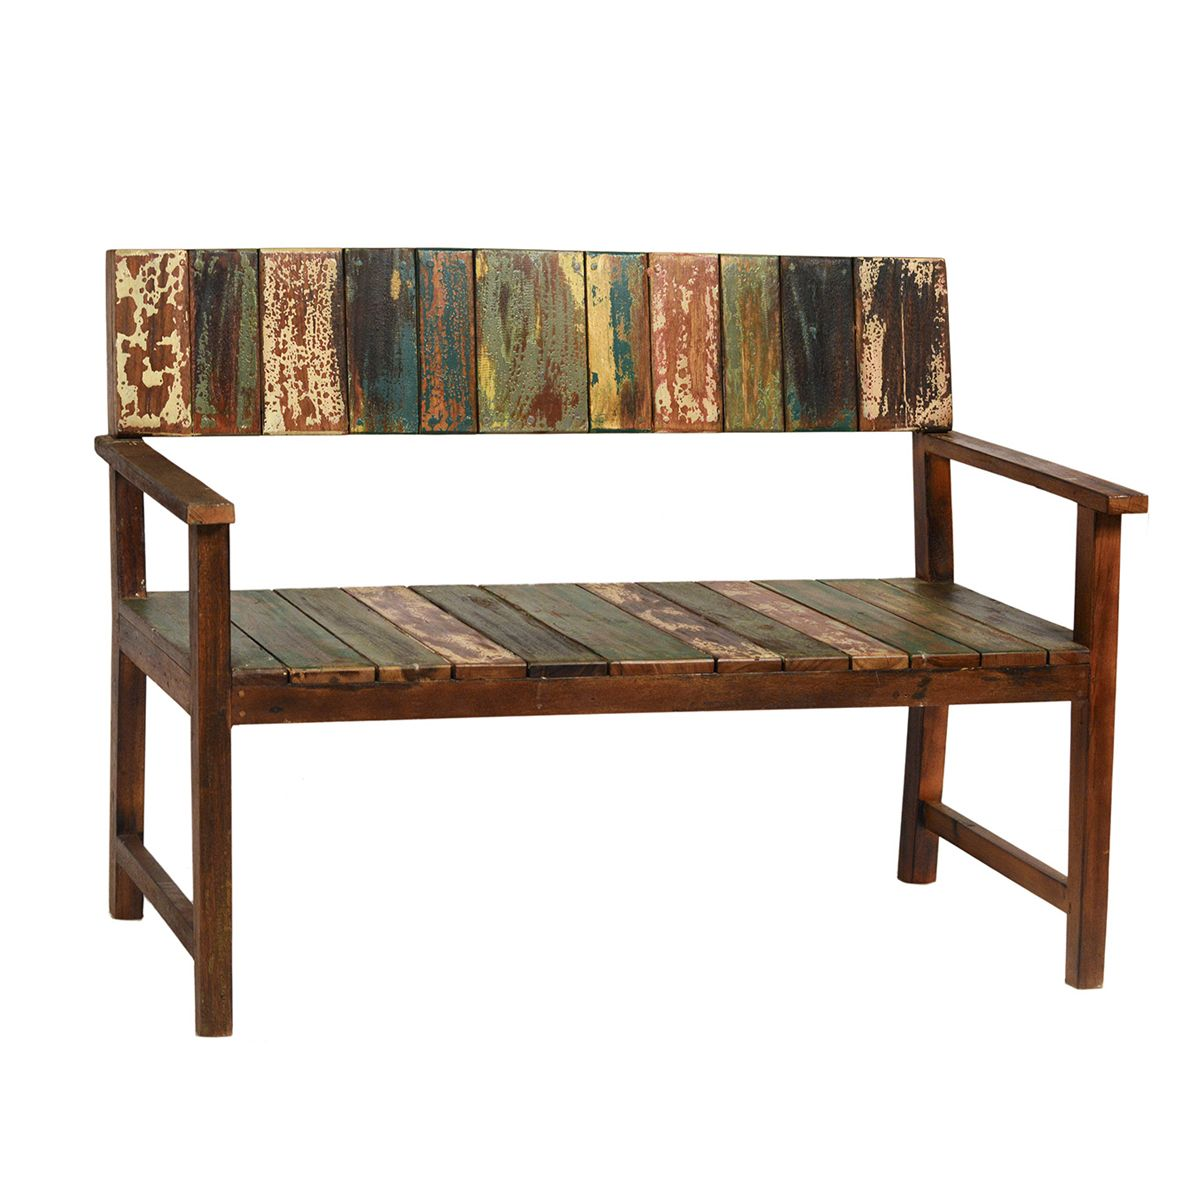 Reclaimed boat wood bench with beautiful distressed paint finish. Each is unique!